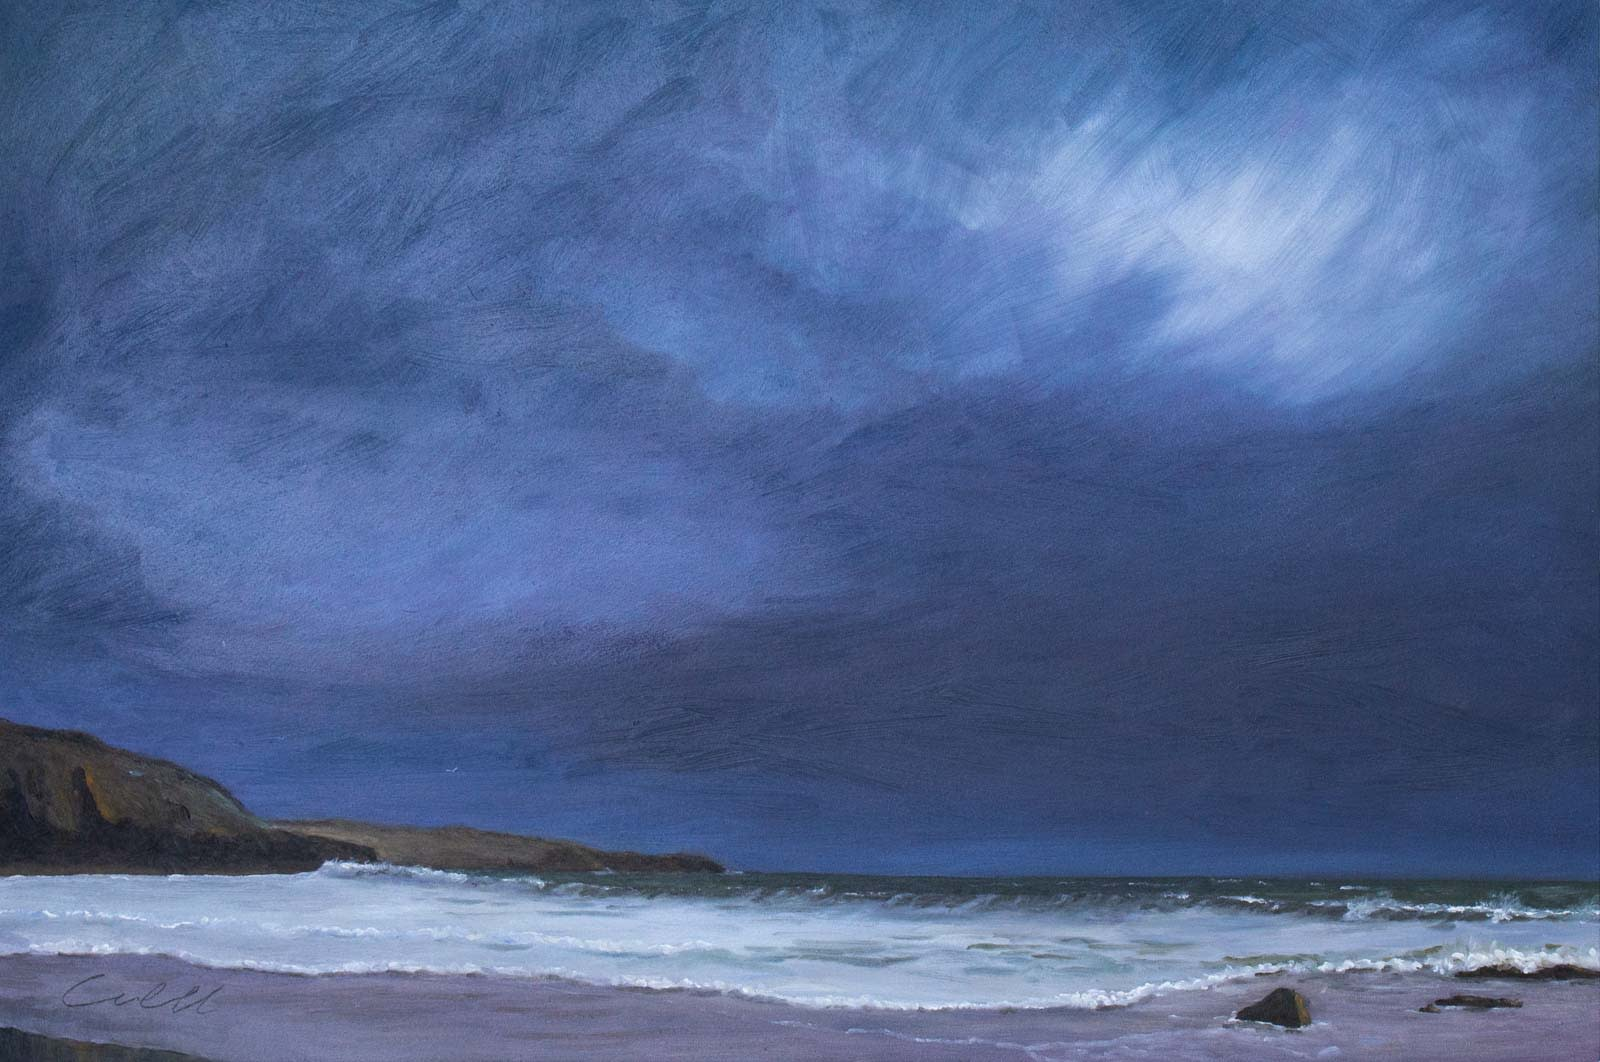 The Storm, Cornwall